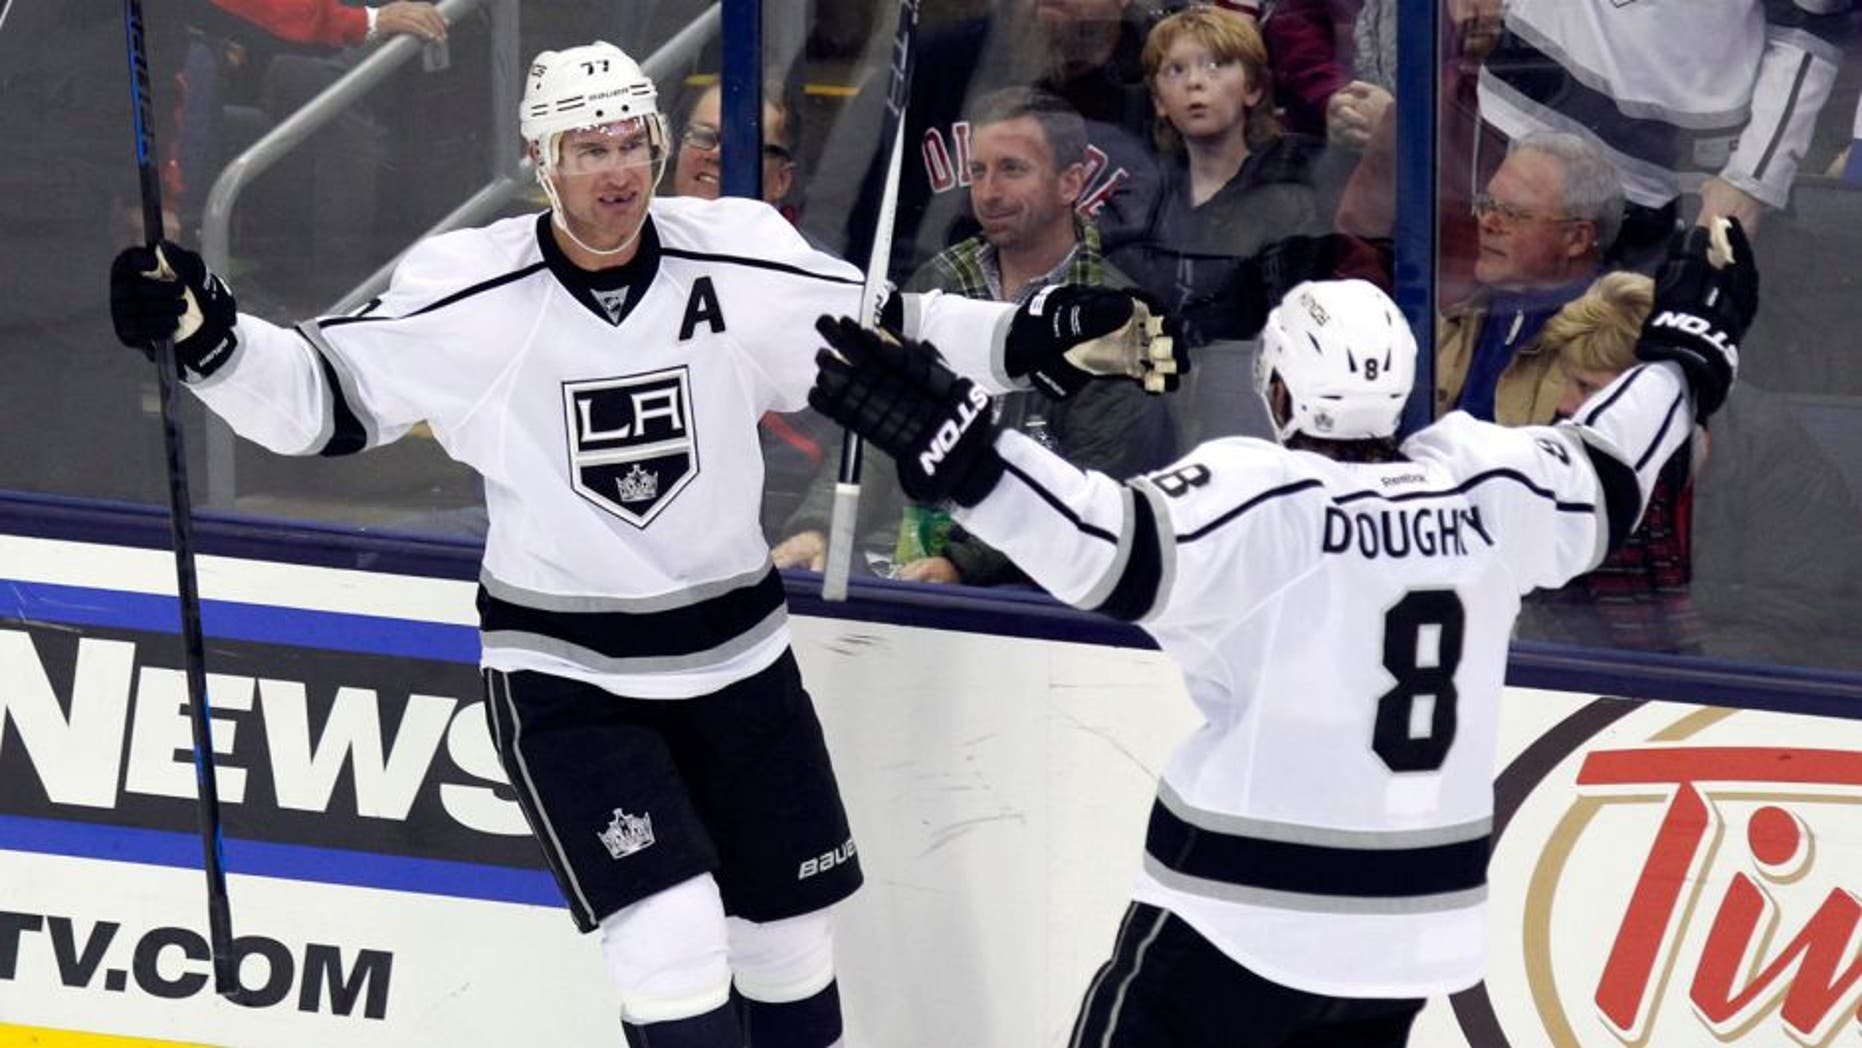 Los Angeles Kings' Jeff Carter, left, celebrates his goal against the Columbus Blue Jackets with teammate Drew Doughty during the third period of an NHL hockey game in Columbus, Ohio, Tuesday, Dec. 8, 2015. Los Angeles won 3-2 in overtime. (AP Photo/Paul Vernon)